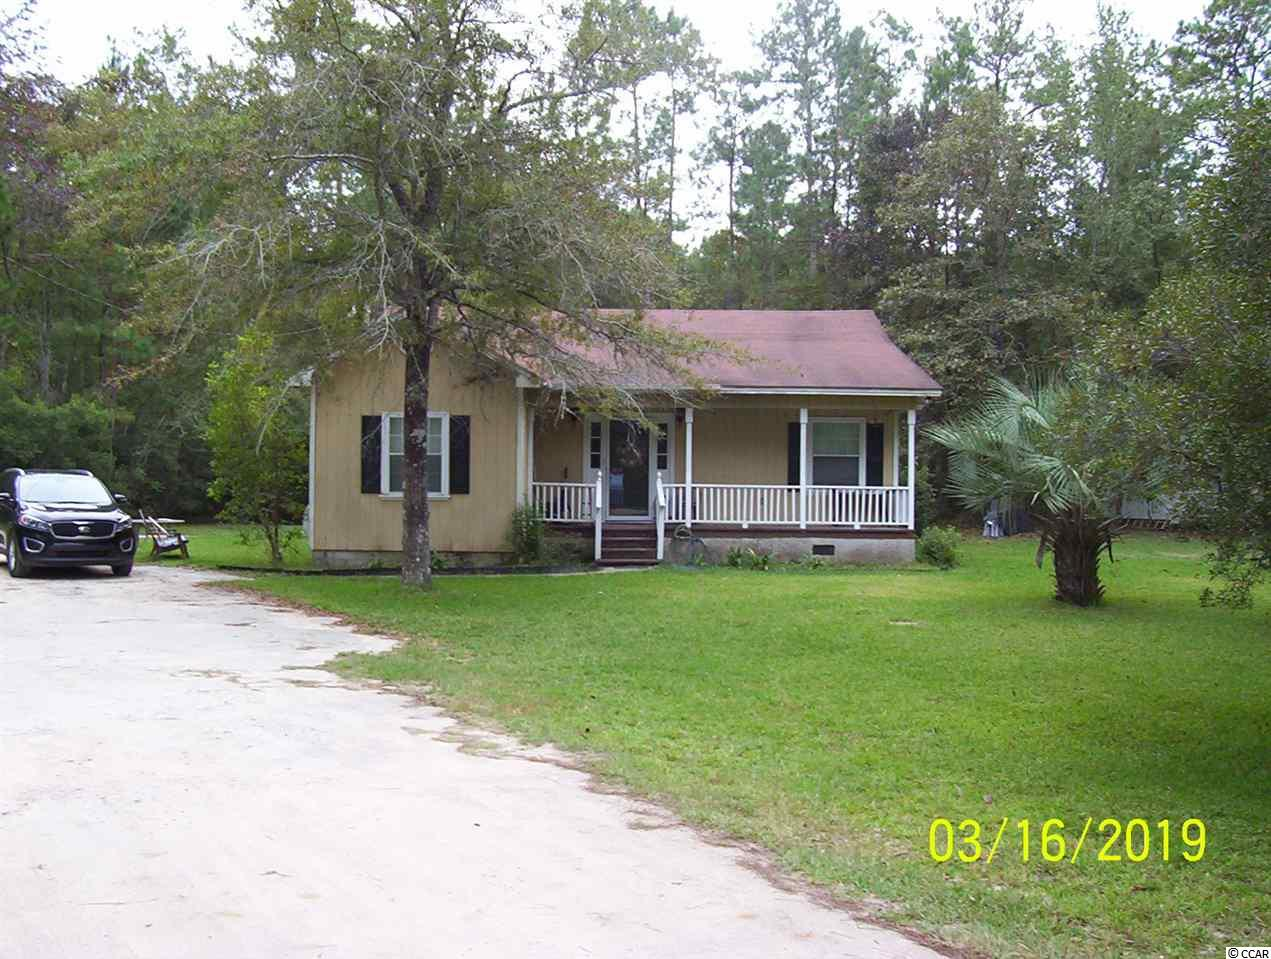 """VERY NICE 4BR LOW COUNTRY HOUSE SURROUNDED BY PEACEFUL FOREST, OVER 1-ACRE LOT, SUNKEN LIVING ROOM, WASHER/DRYER, LARGE FRONT PORCH, LARGE REAR DECK, SEE THE DEER RUN WILD, NO FLOODING, NO FLOOD ZONE, HWY. 57 IS CRAZY WITH NEW CONSTRUCTION, THERE IS NOT ANOTHER HOUSE IN THIS PRIVATE LOCATION OR LAND SIZE AT THIS PRICE, OWNER FINANCING, OWNER HAS JUST GREATLY REDUCED THE PRICE, """"AS IS, WHERE IS"""", OWNER/BROKER!!!!!"""